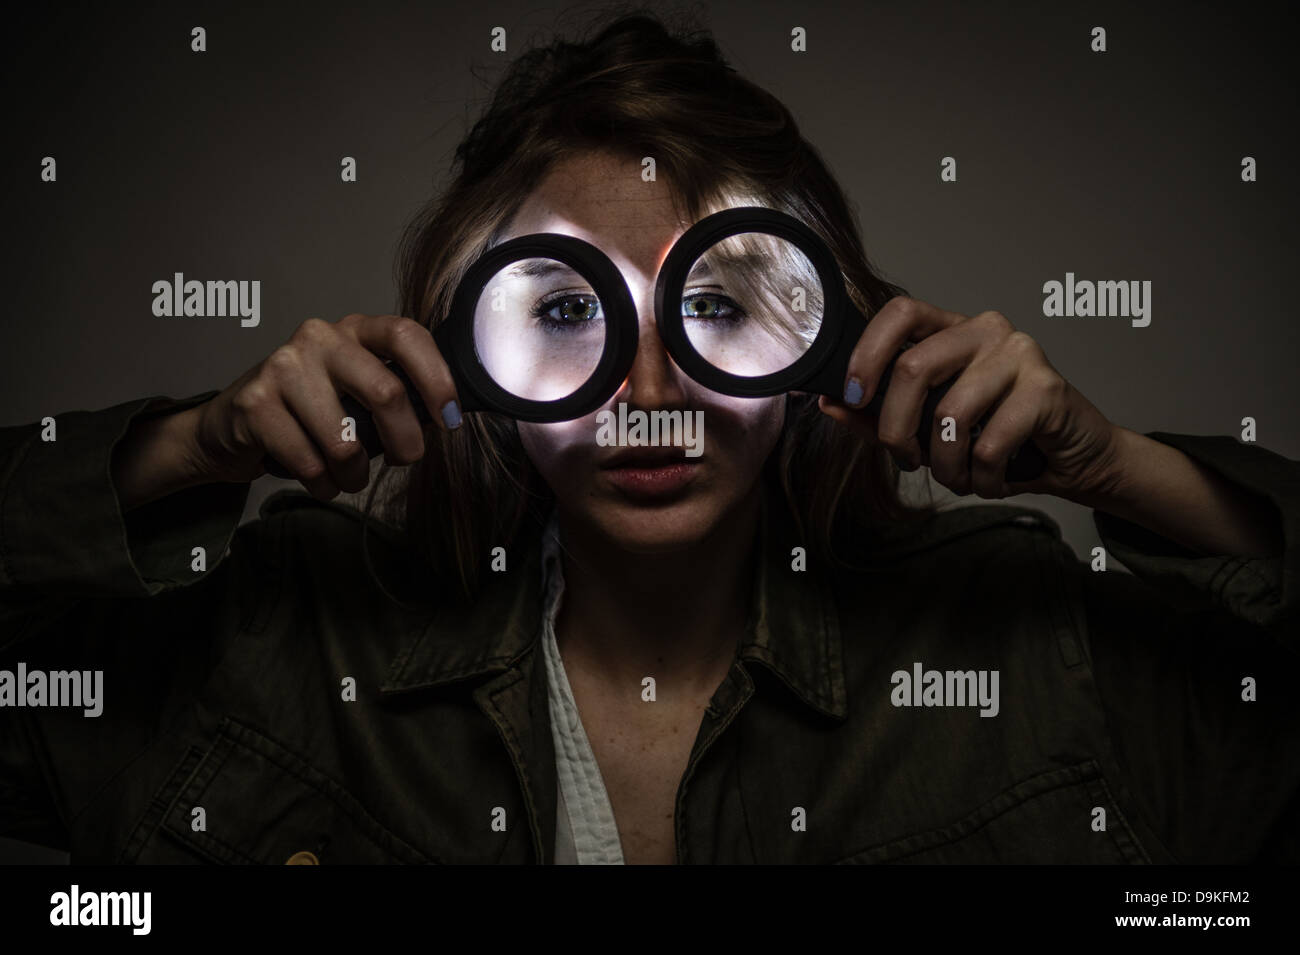 A woman holding a pair of illuminated magnifying glasses over her eyes - Stock Image